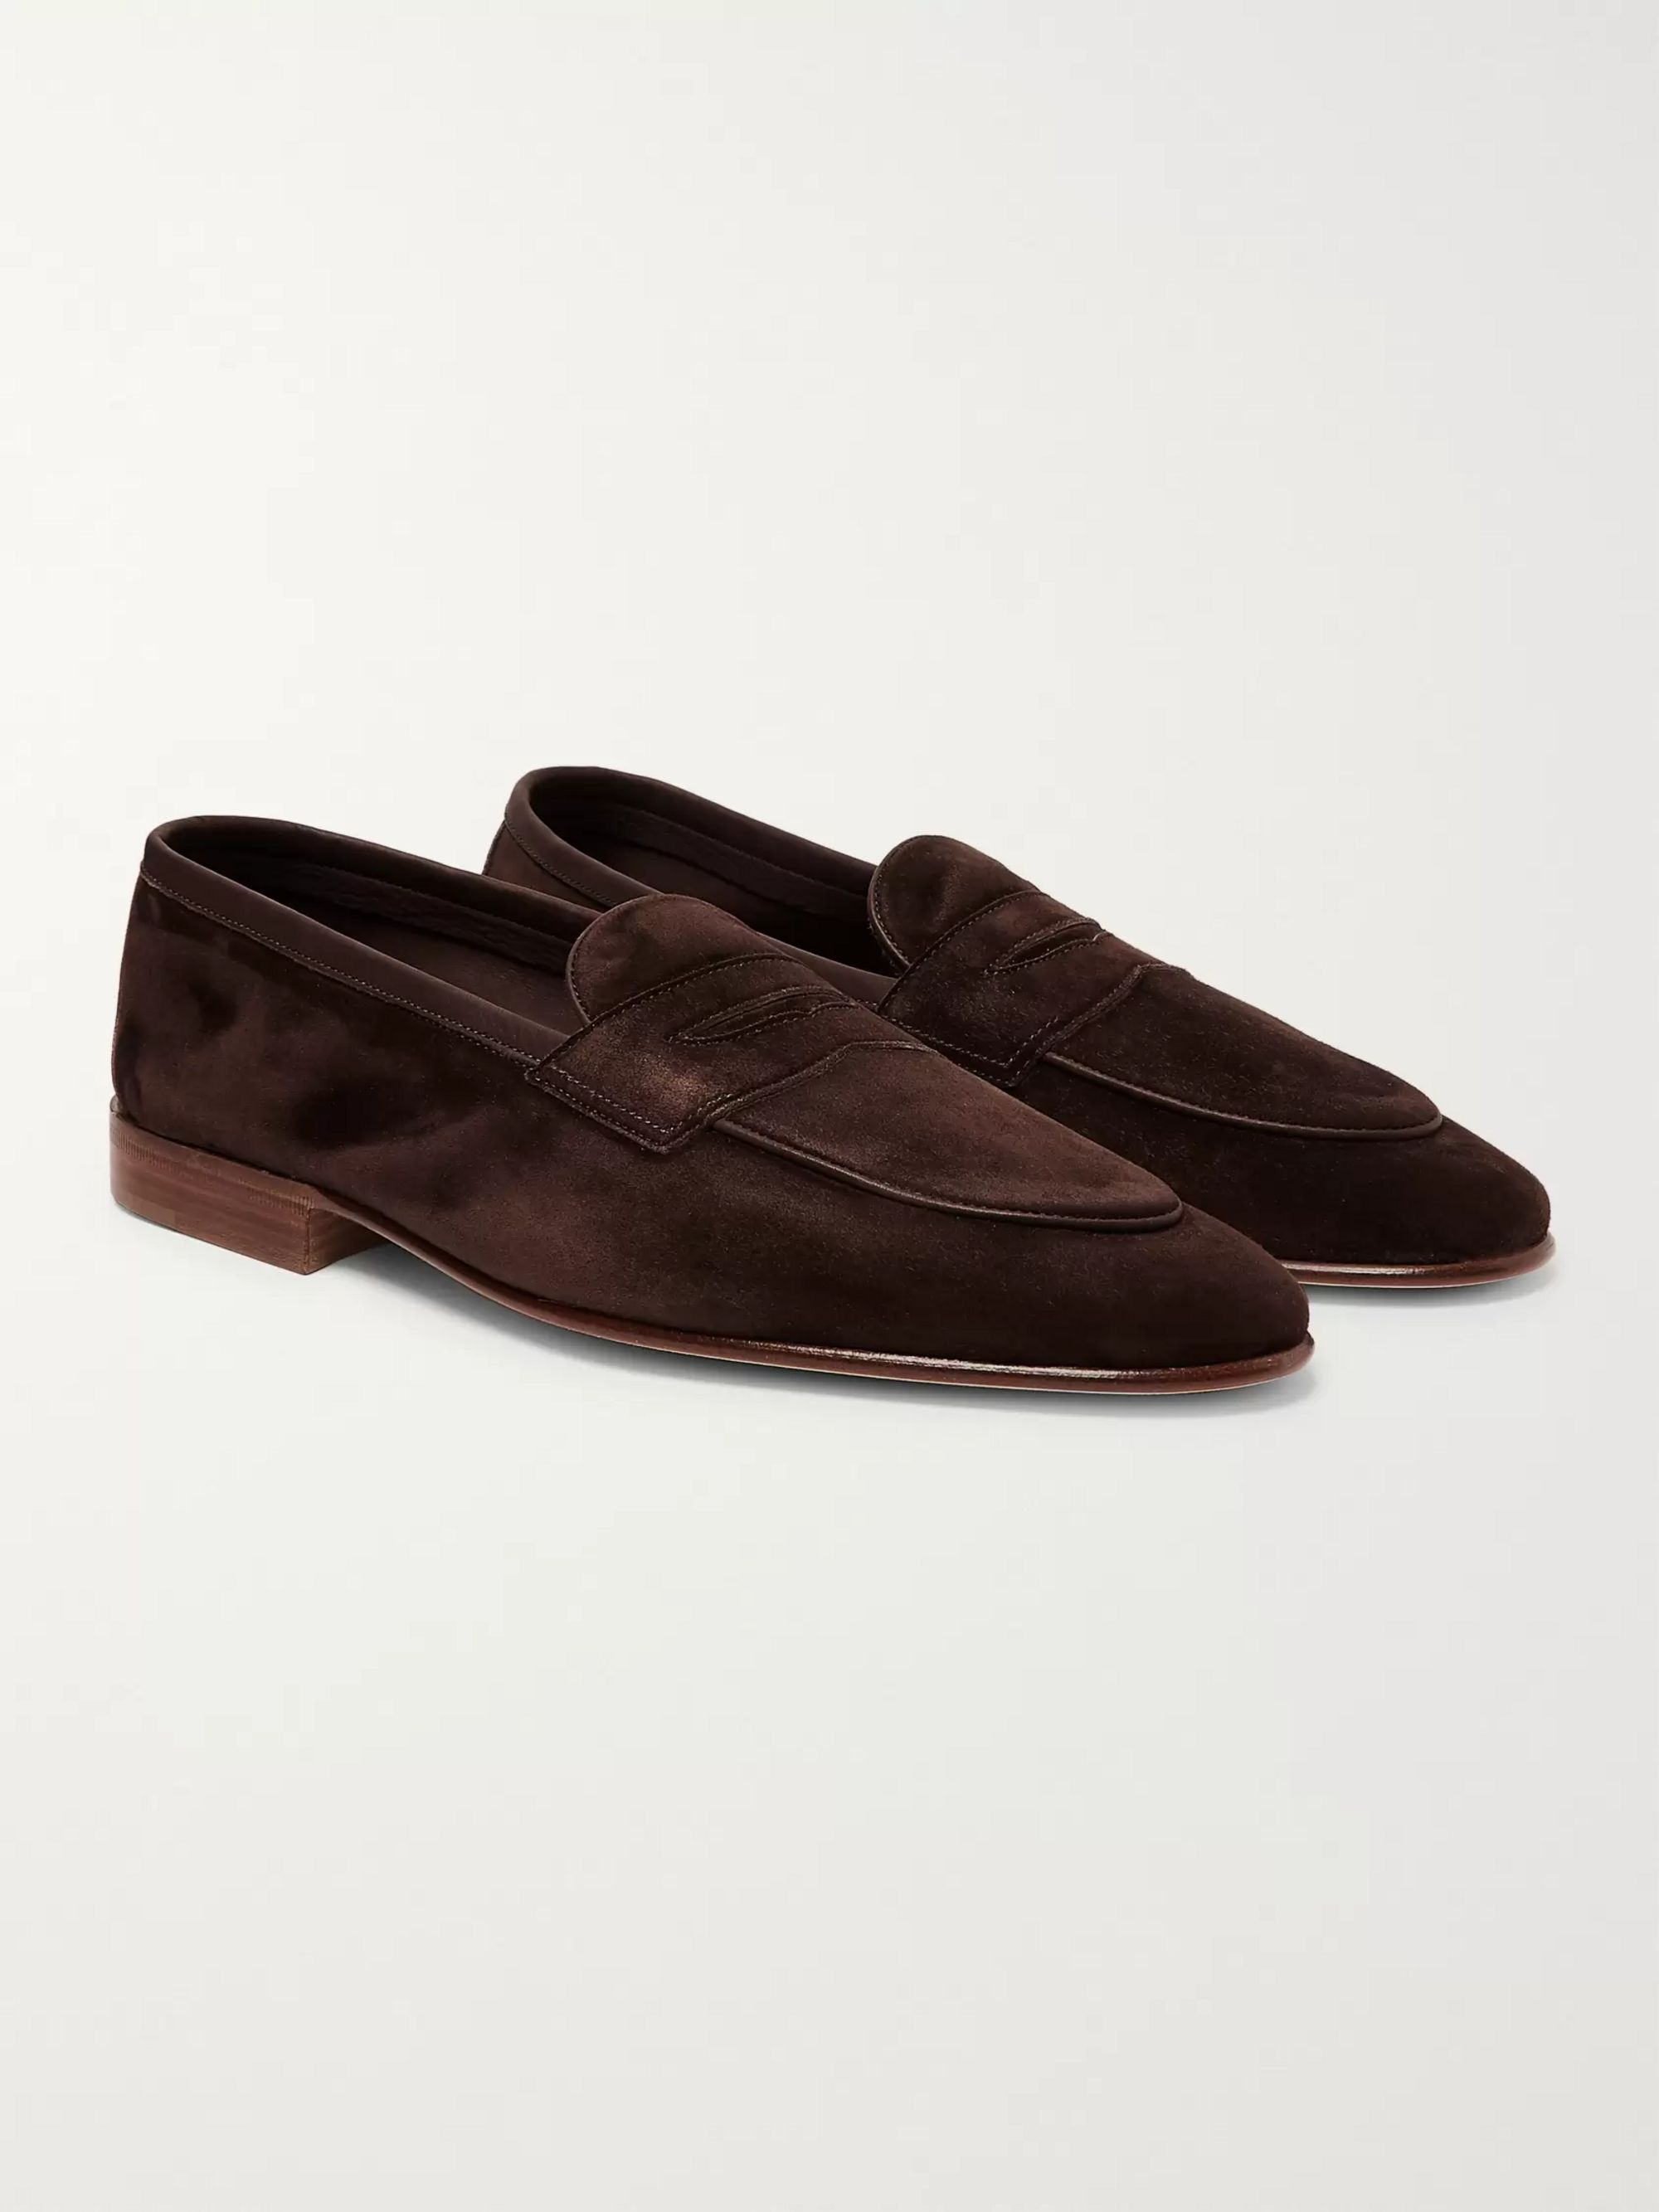 Edward Green Polperro Leather-Trimmed Suede Penny Loafers